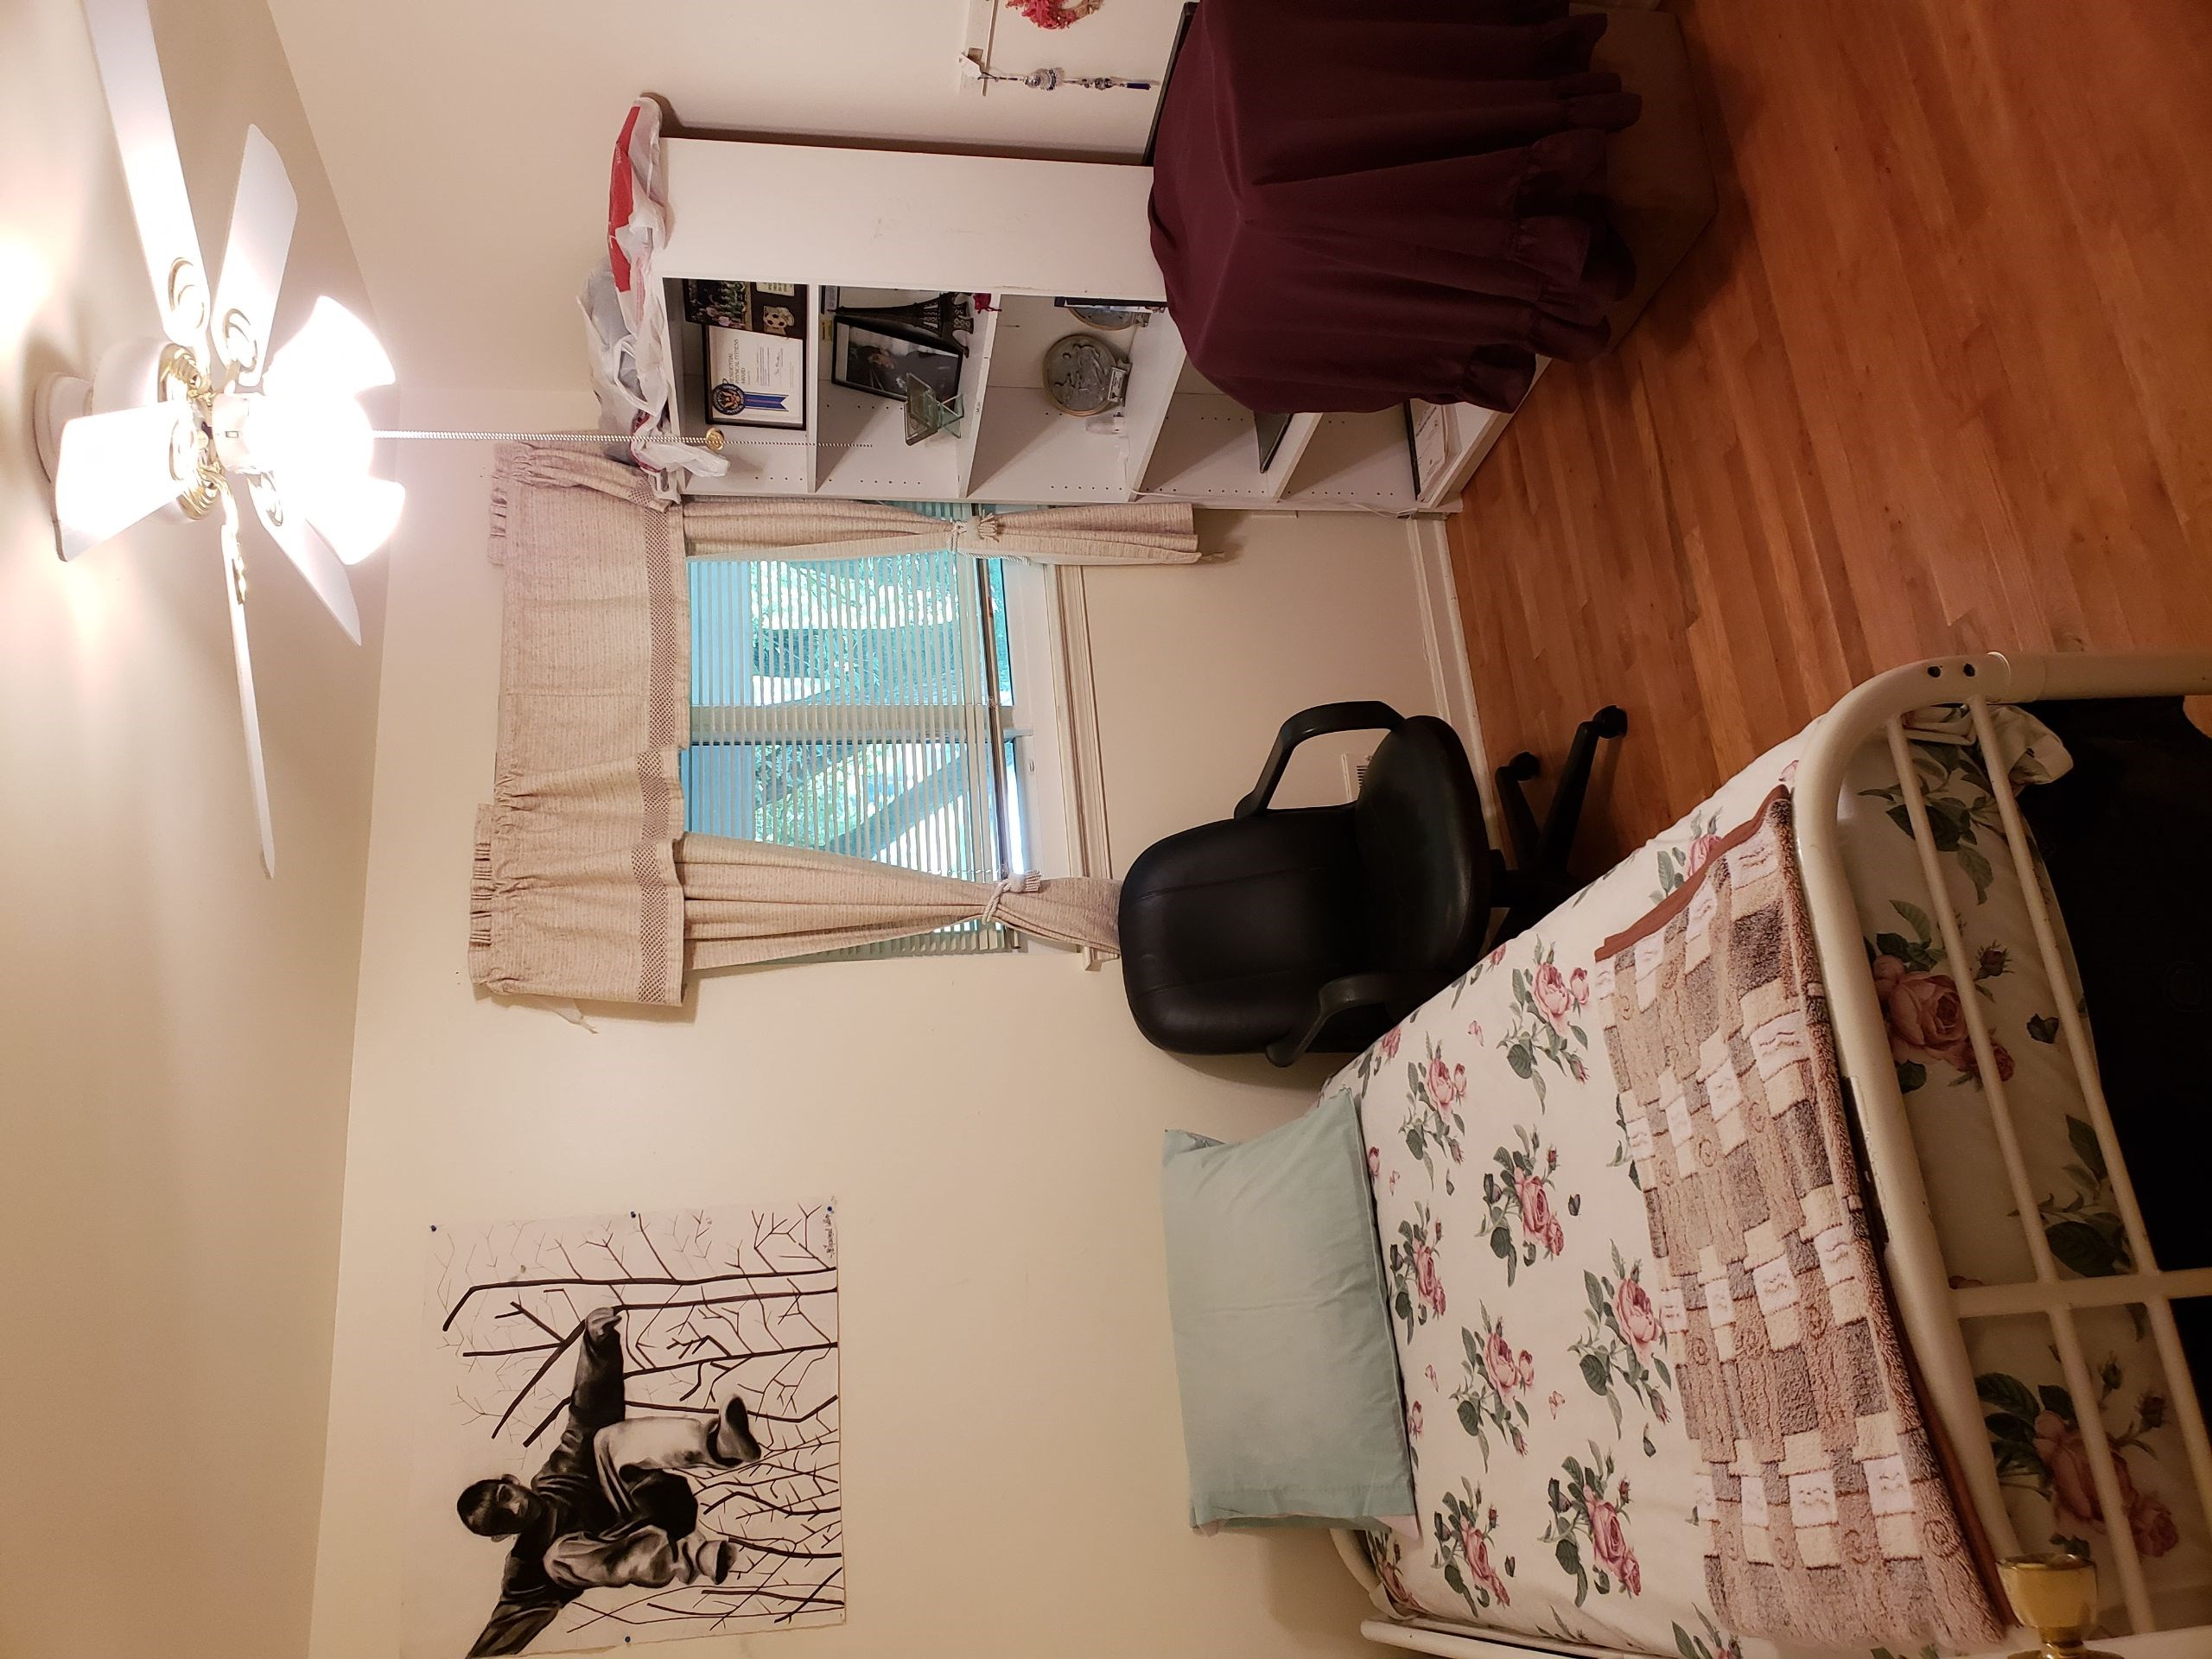 550 Room To Rent And House To Share Female Only In Springfield Va